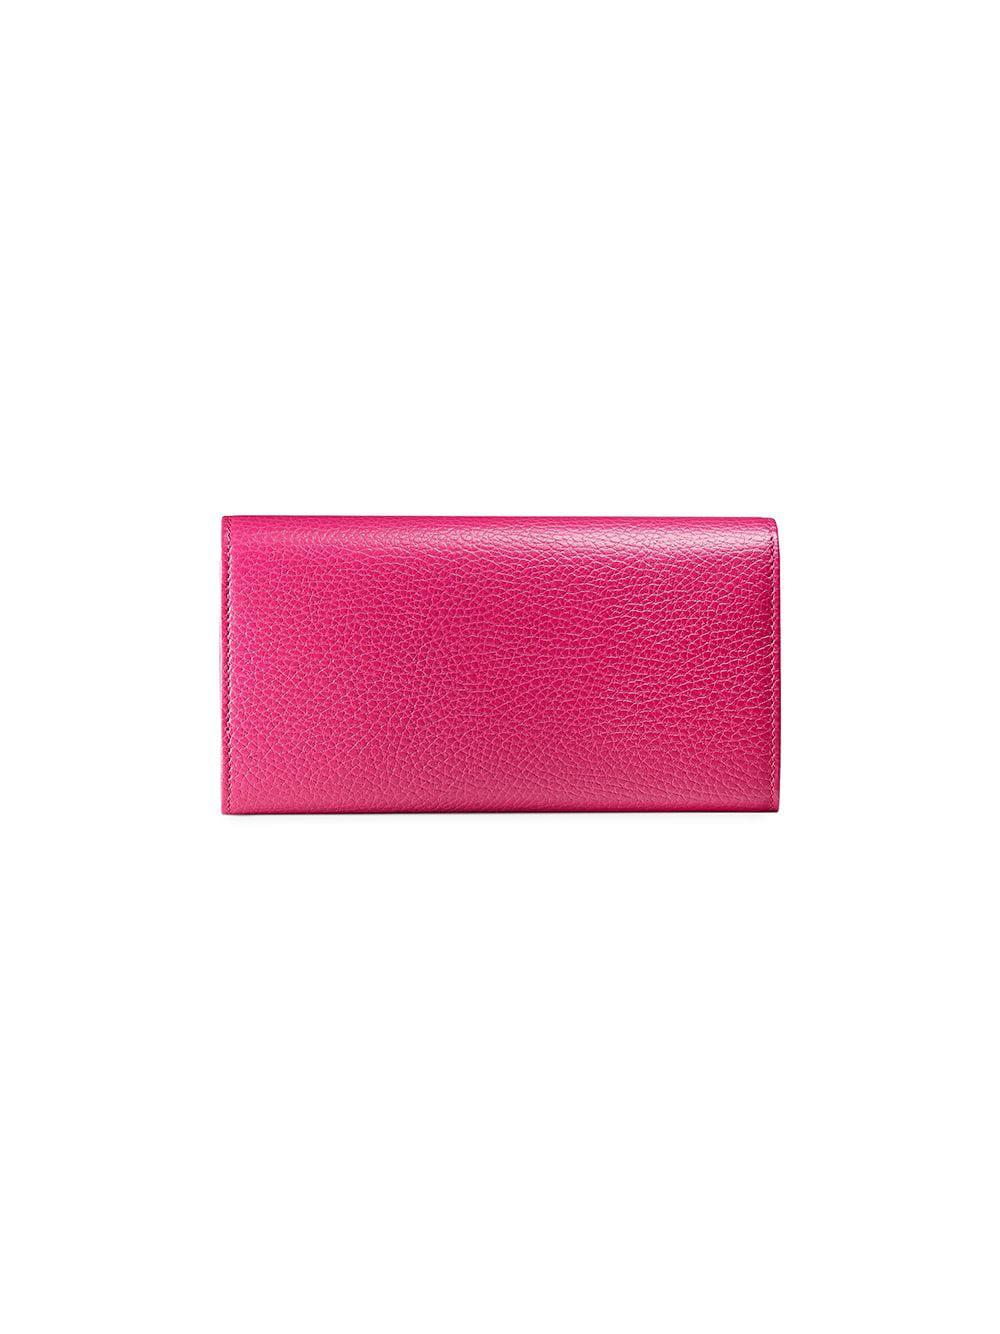 4818f5d3966 Lyst - Gucci GG Marmont Leather Continental Wallet in Pink